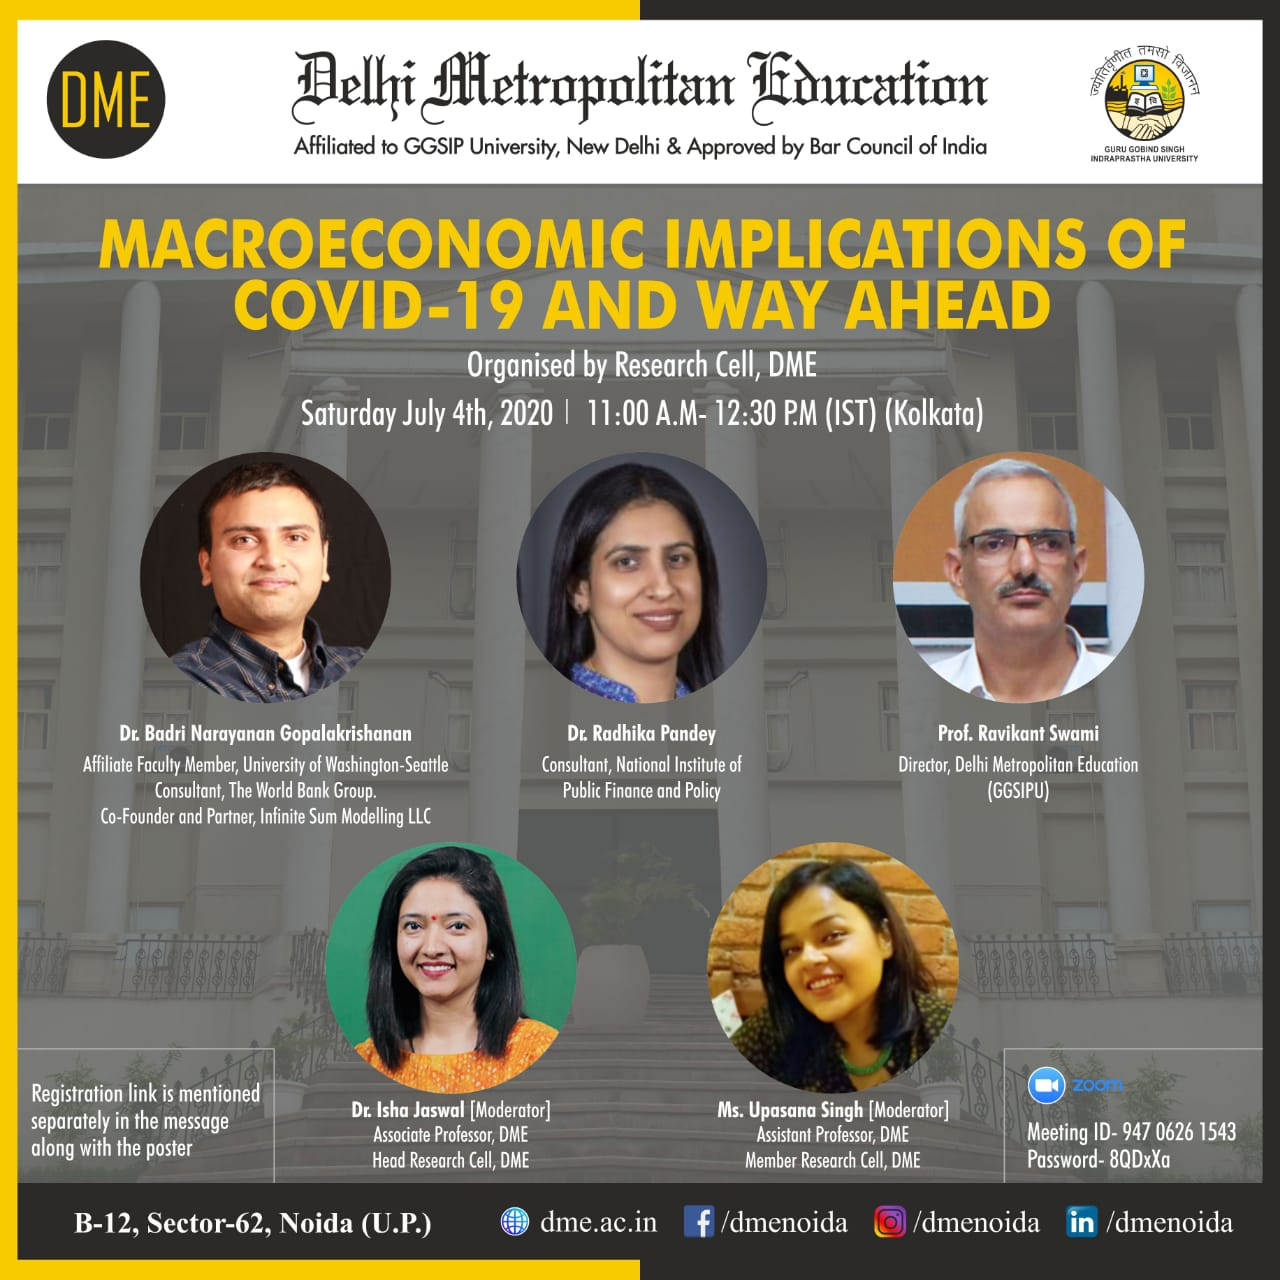 Panel Discussion on Macroeconomic Implications of COVID-19 by DME